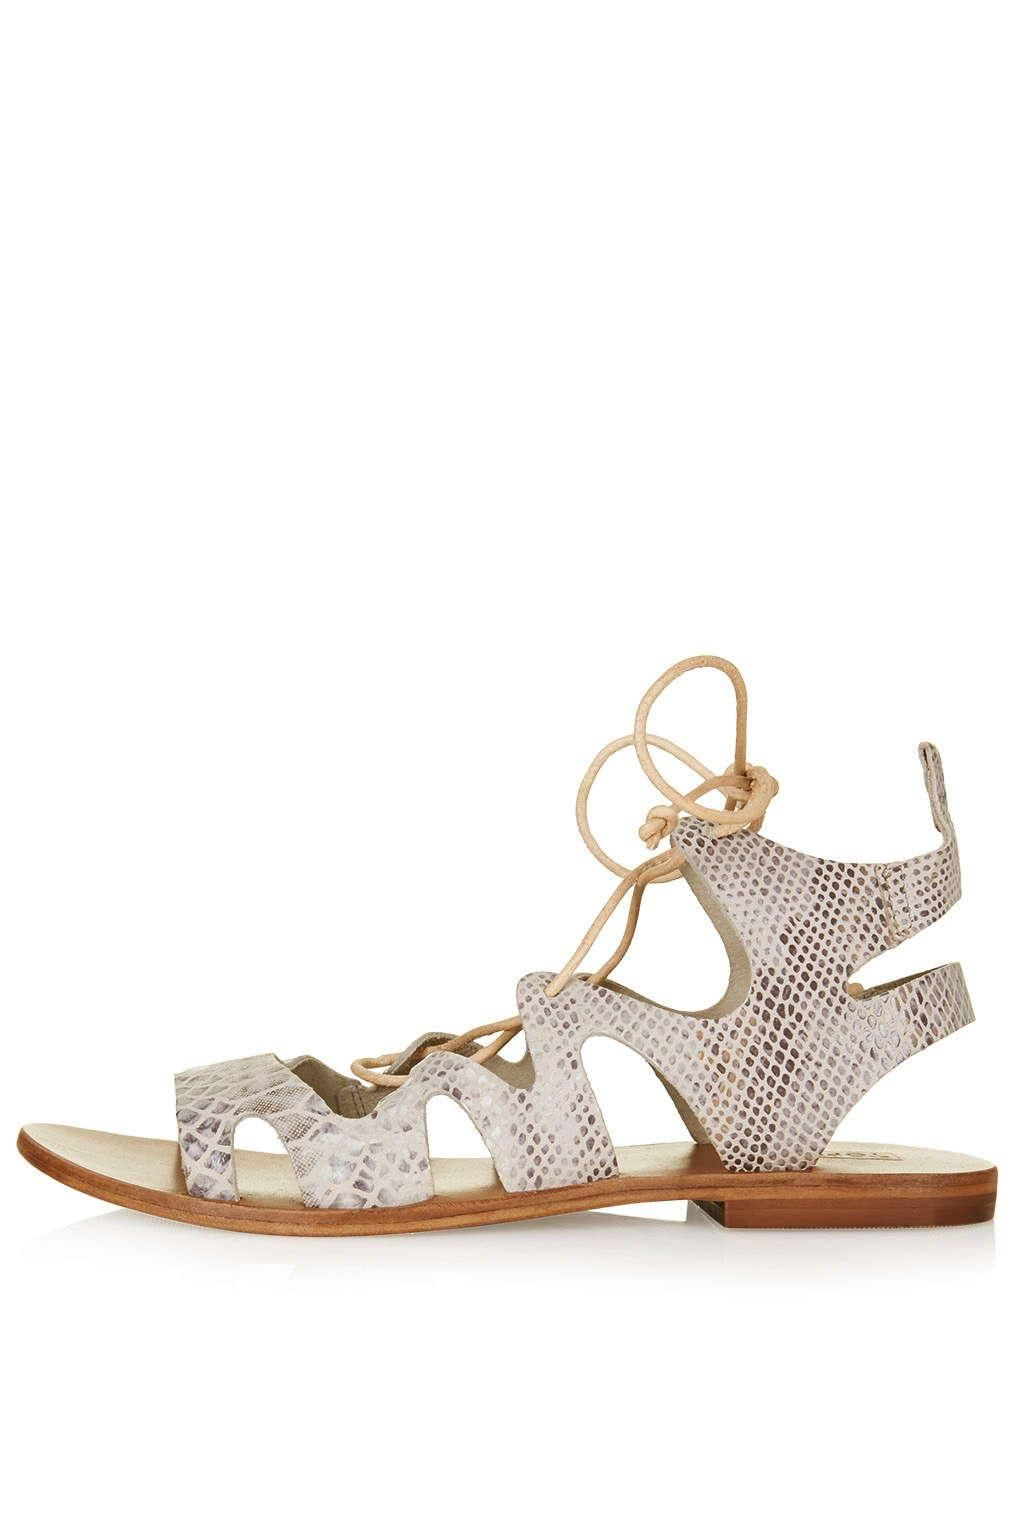 25 Stylish Spring Flats For Every Budget andOccasion